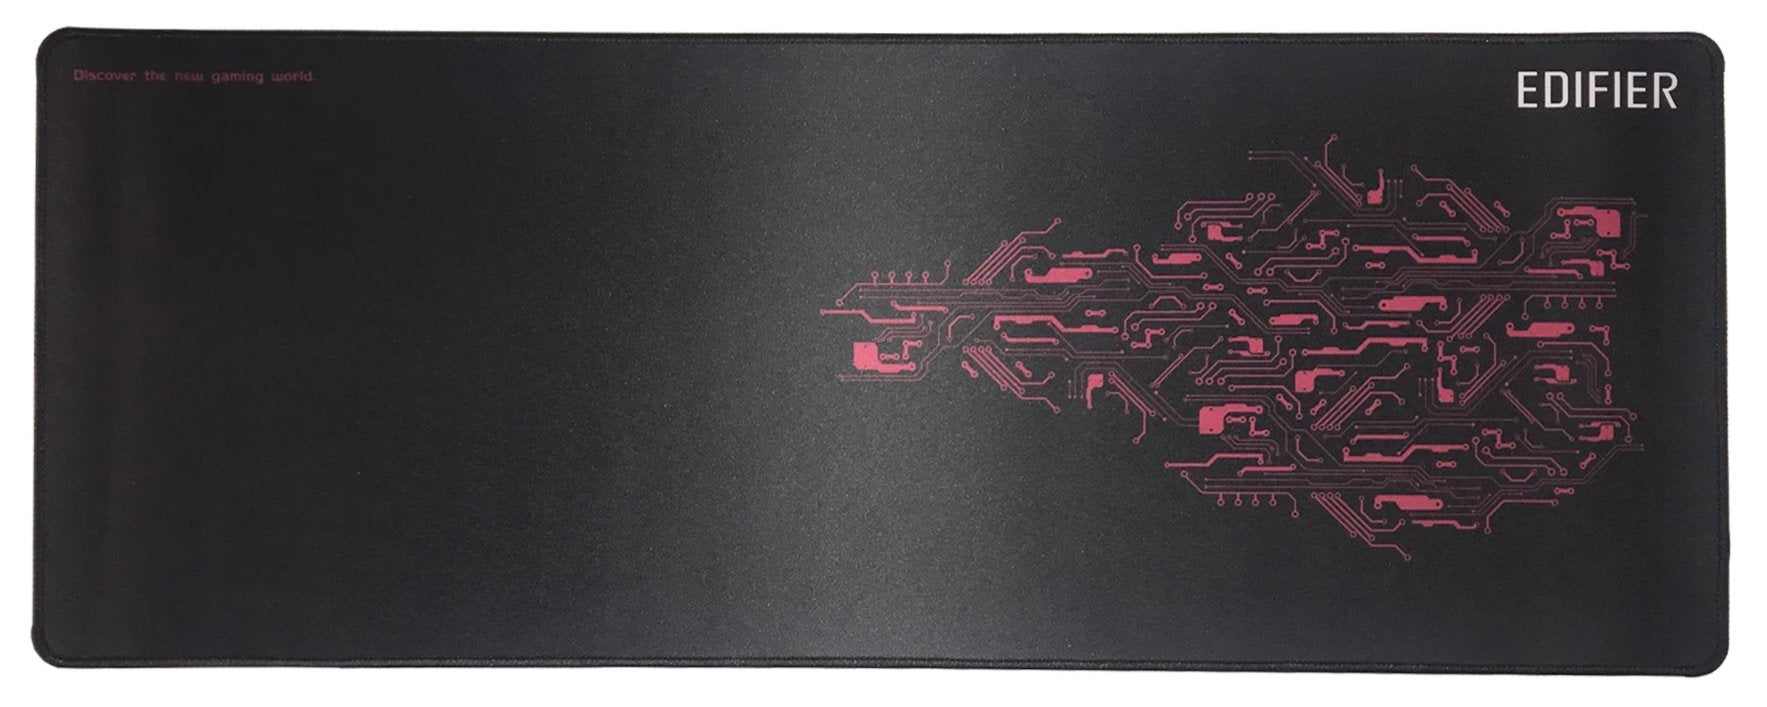 Edifier Gaming Mouse Mat - Large - EDFR-MP-L